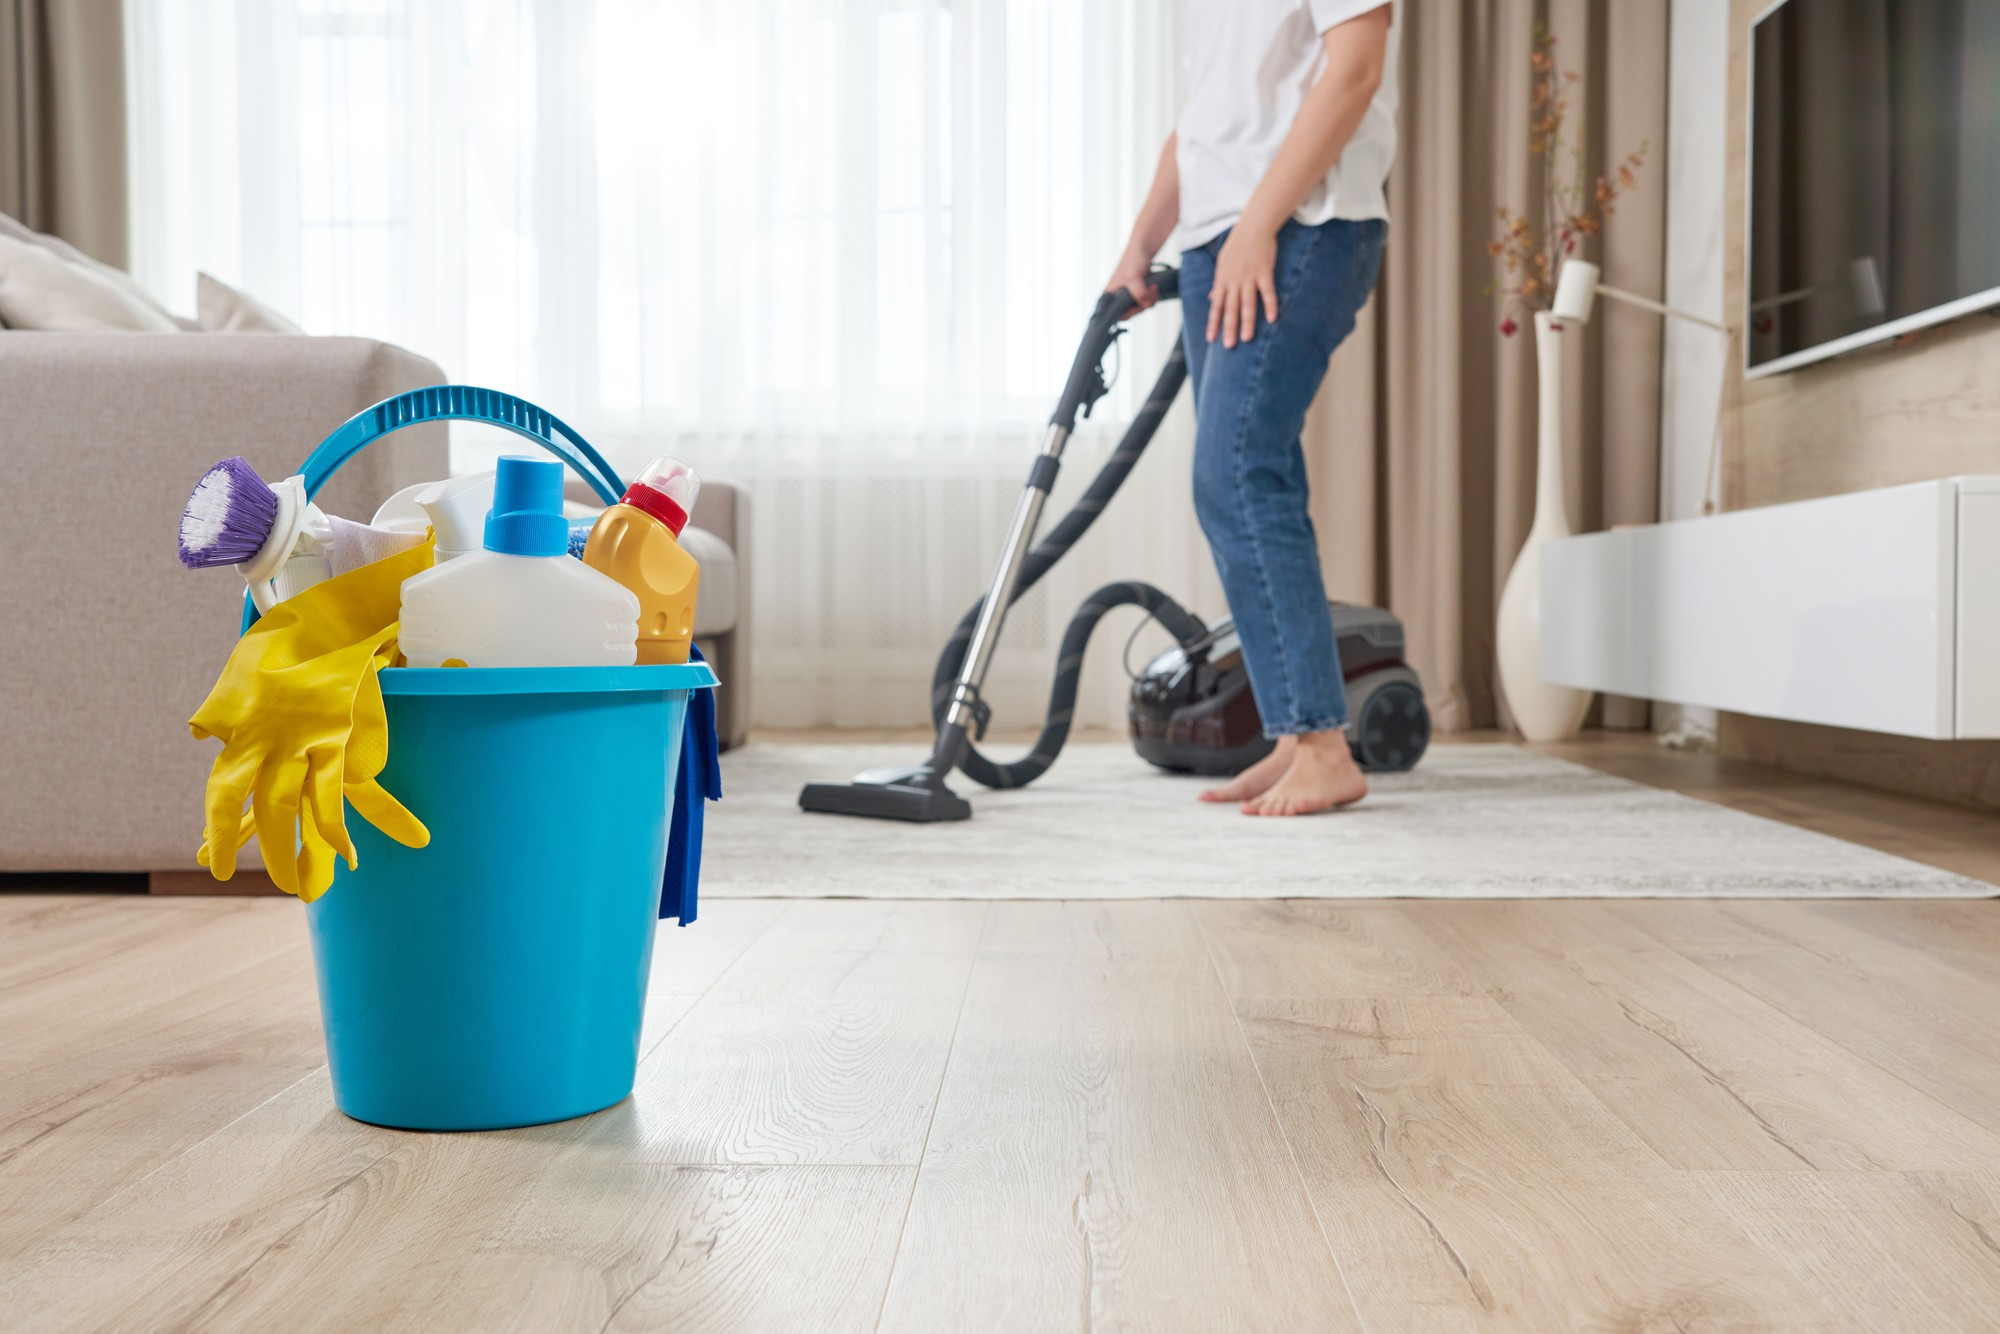 Woman vacuuming rug with bucket of cleaning supplies